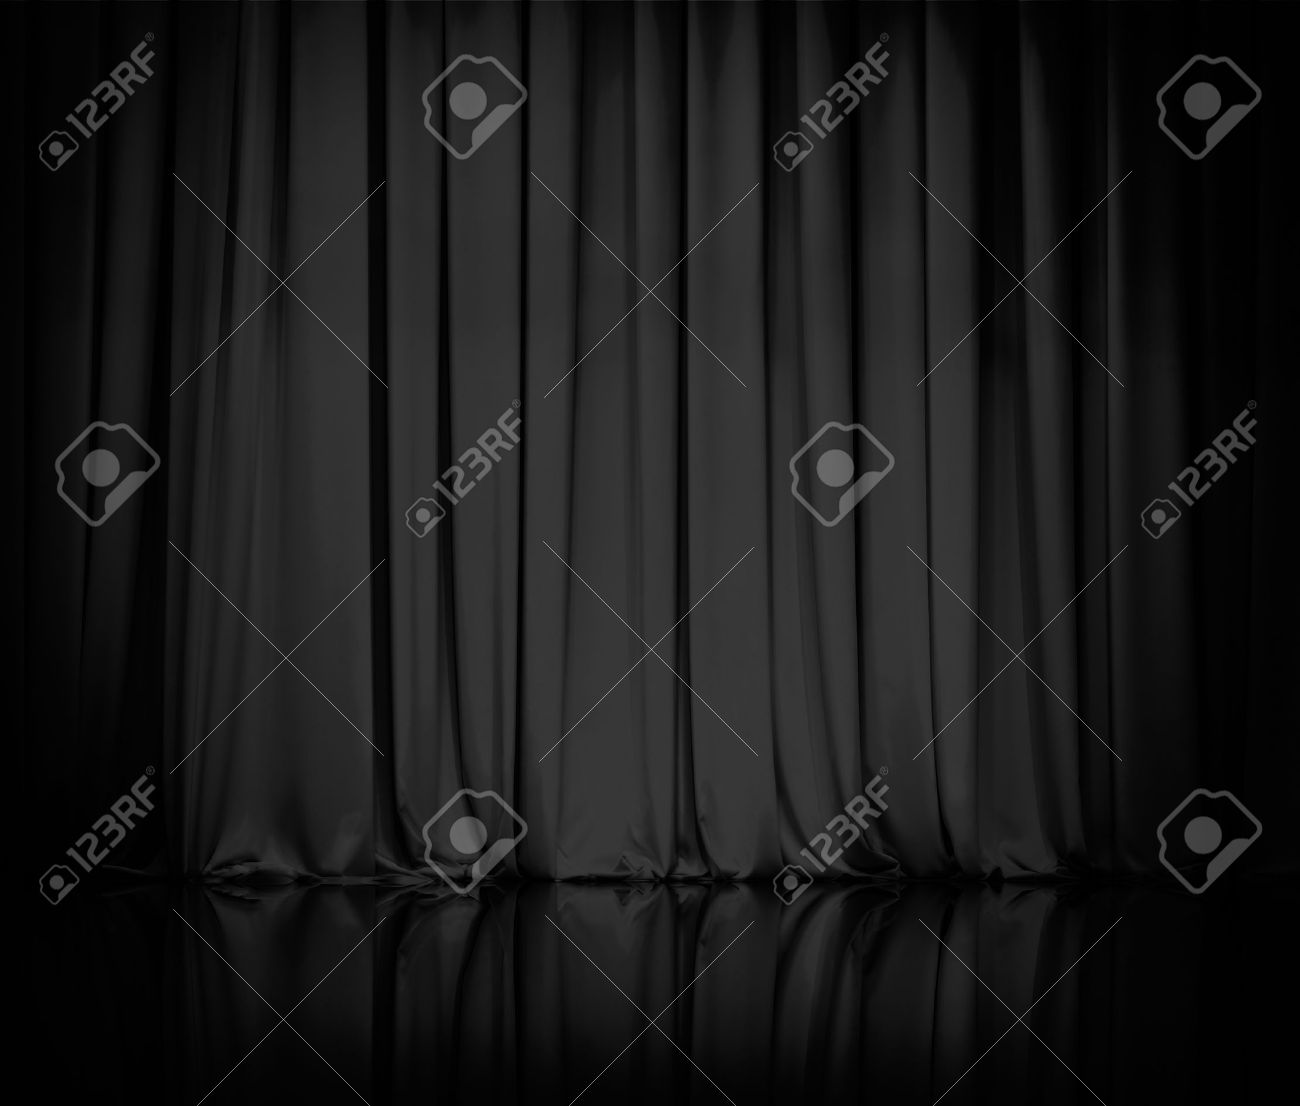 Black Curtain Texture curtain or drapes black stock photo, picture and royalty free